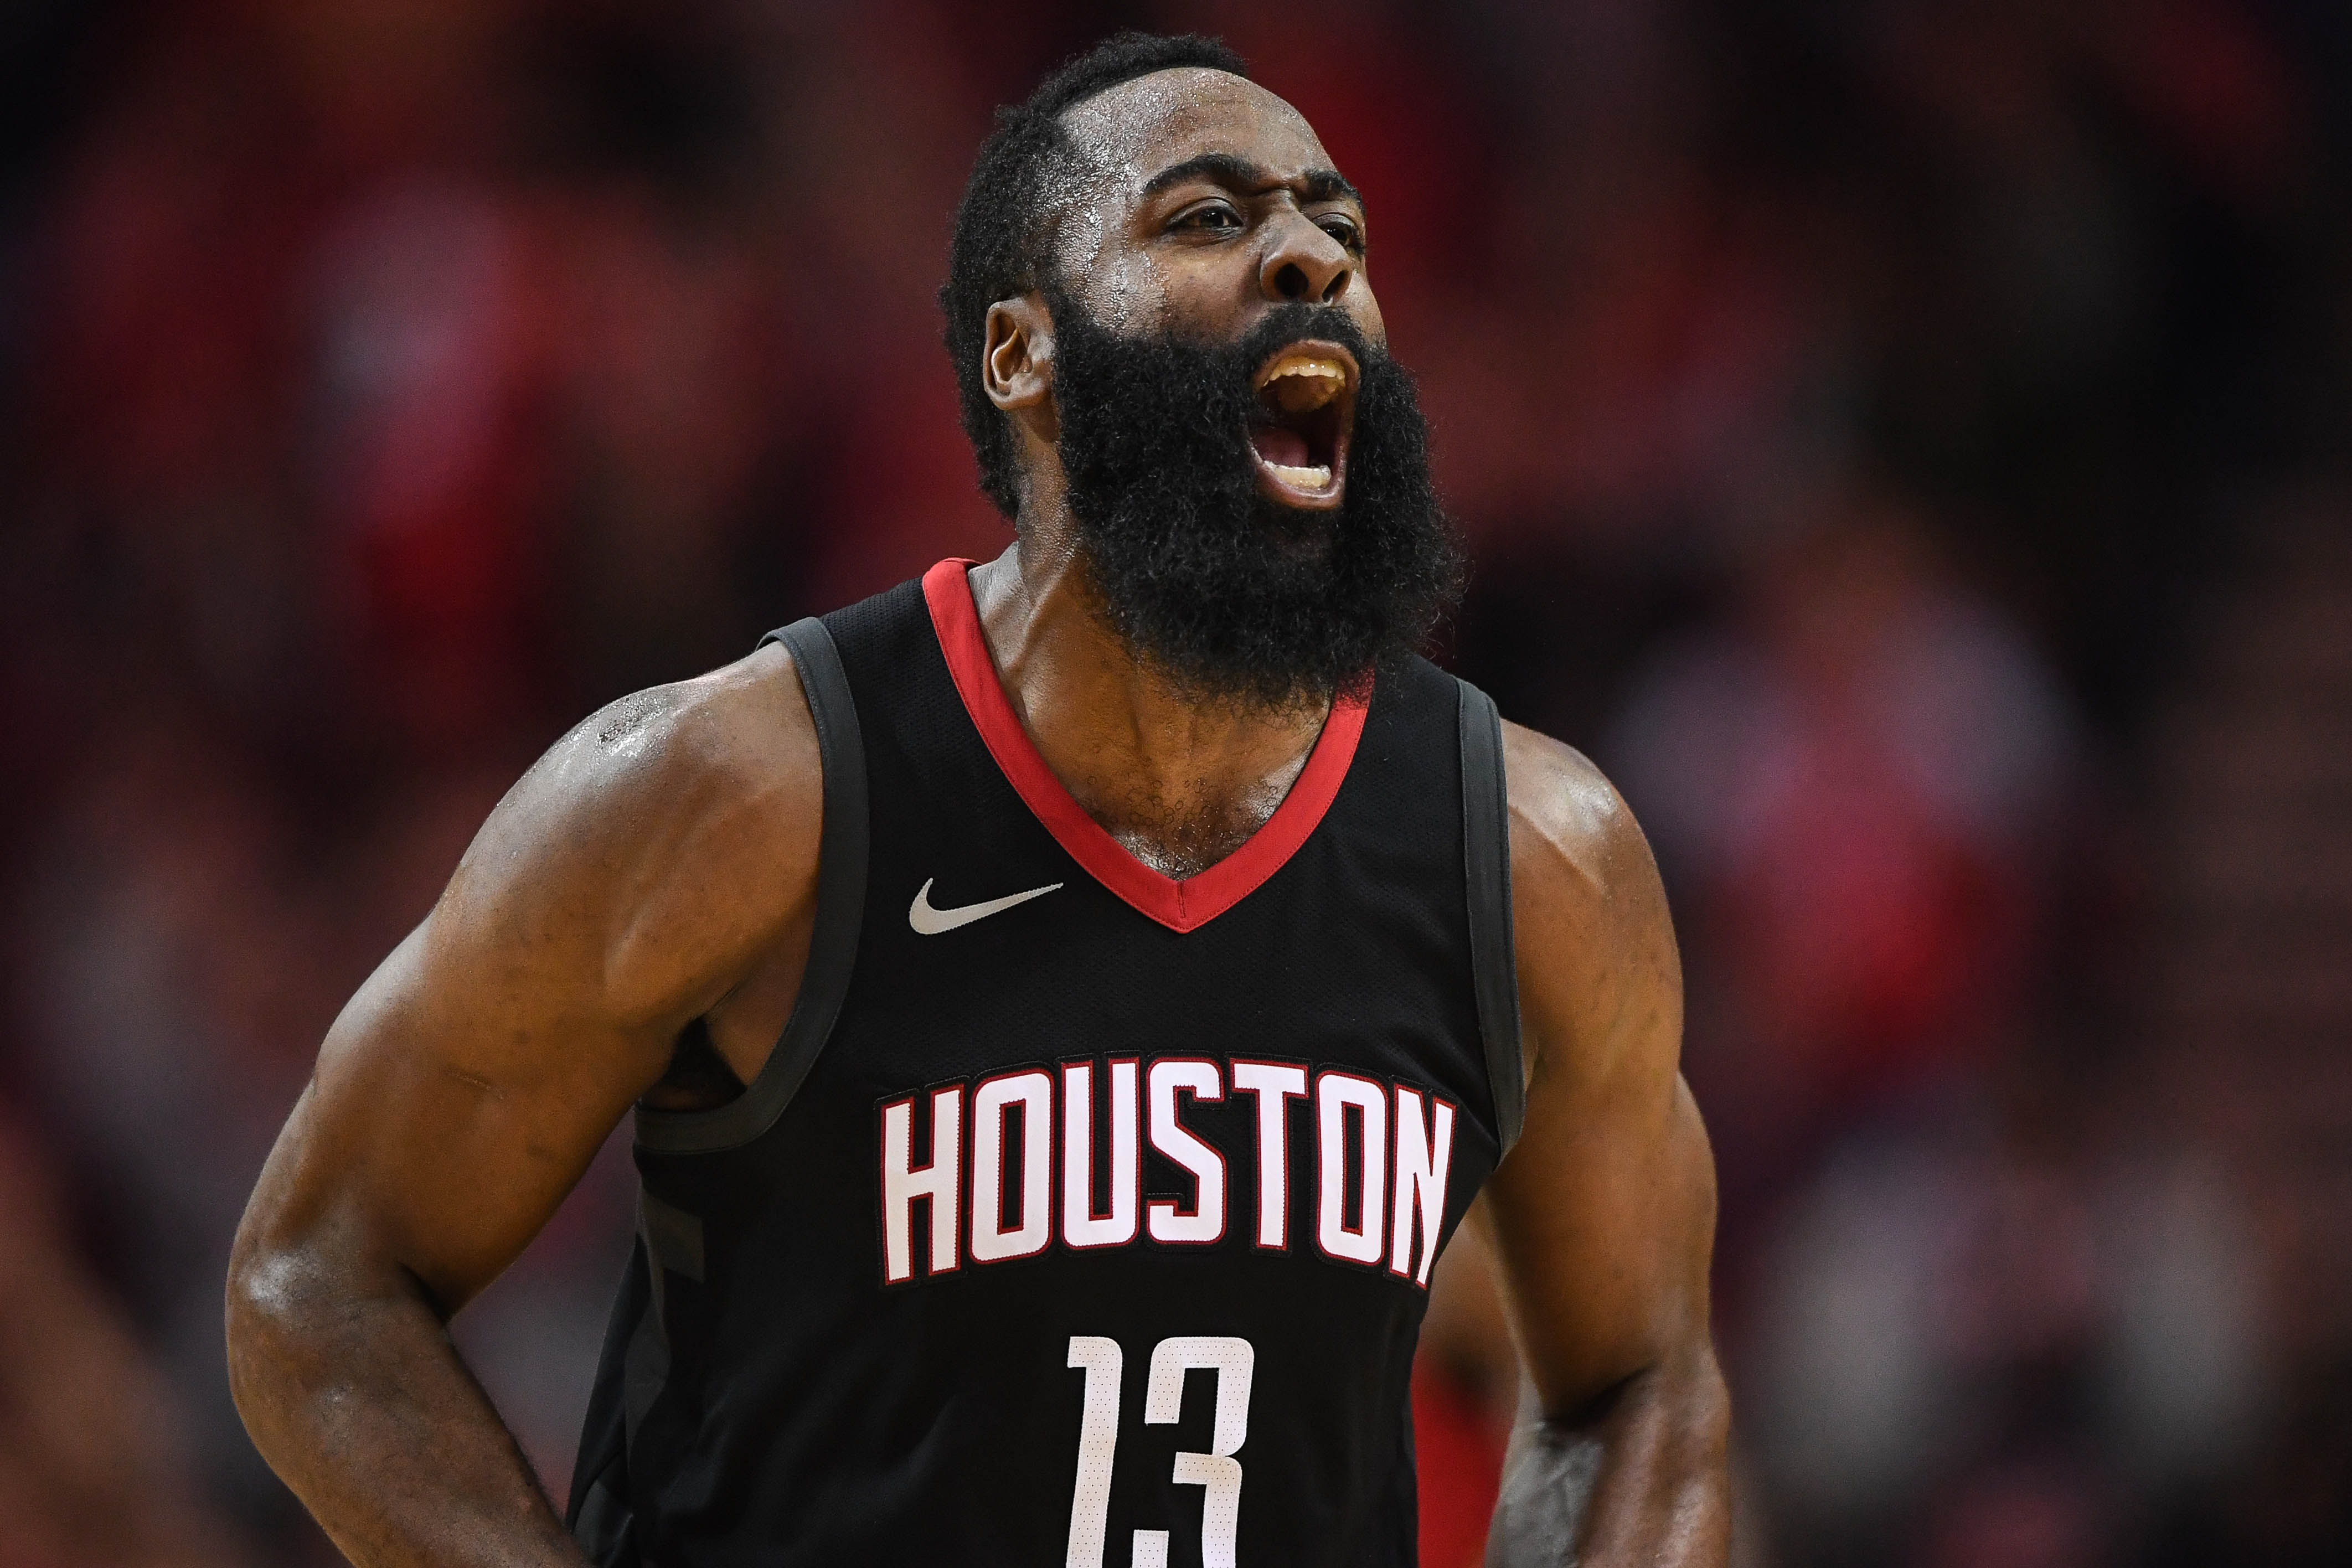 Kia MVP Ladder James Harden makes more headway in claim for first MVP   NBA.com